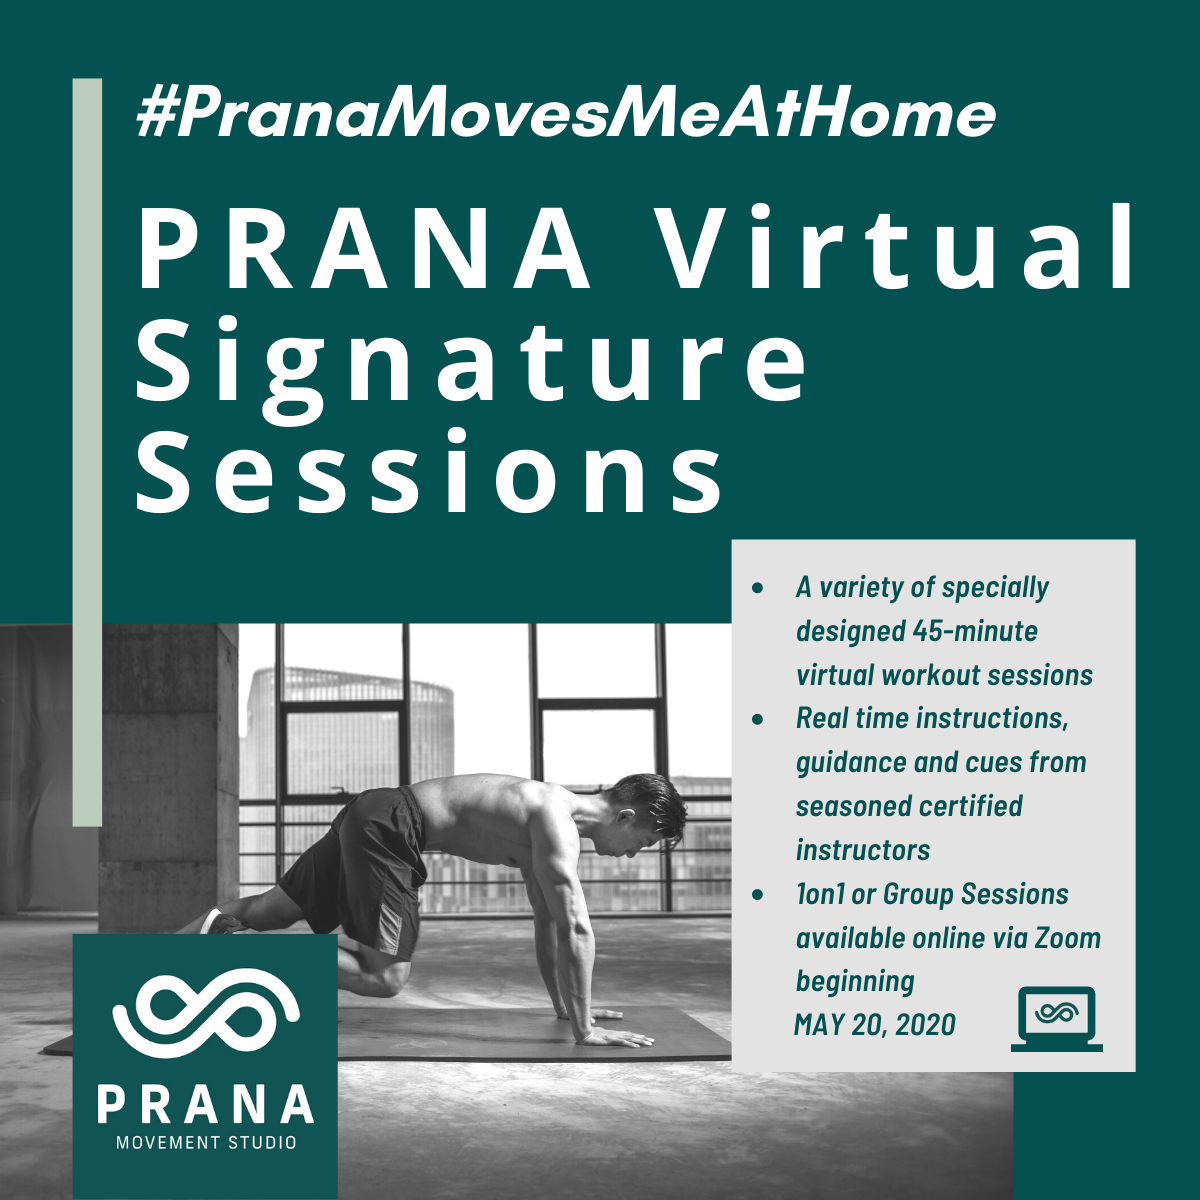 PRANA Virtual Signature Sessions